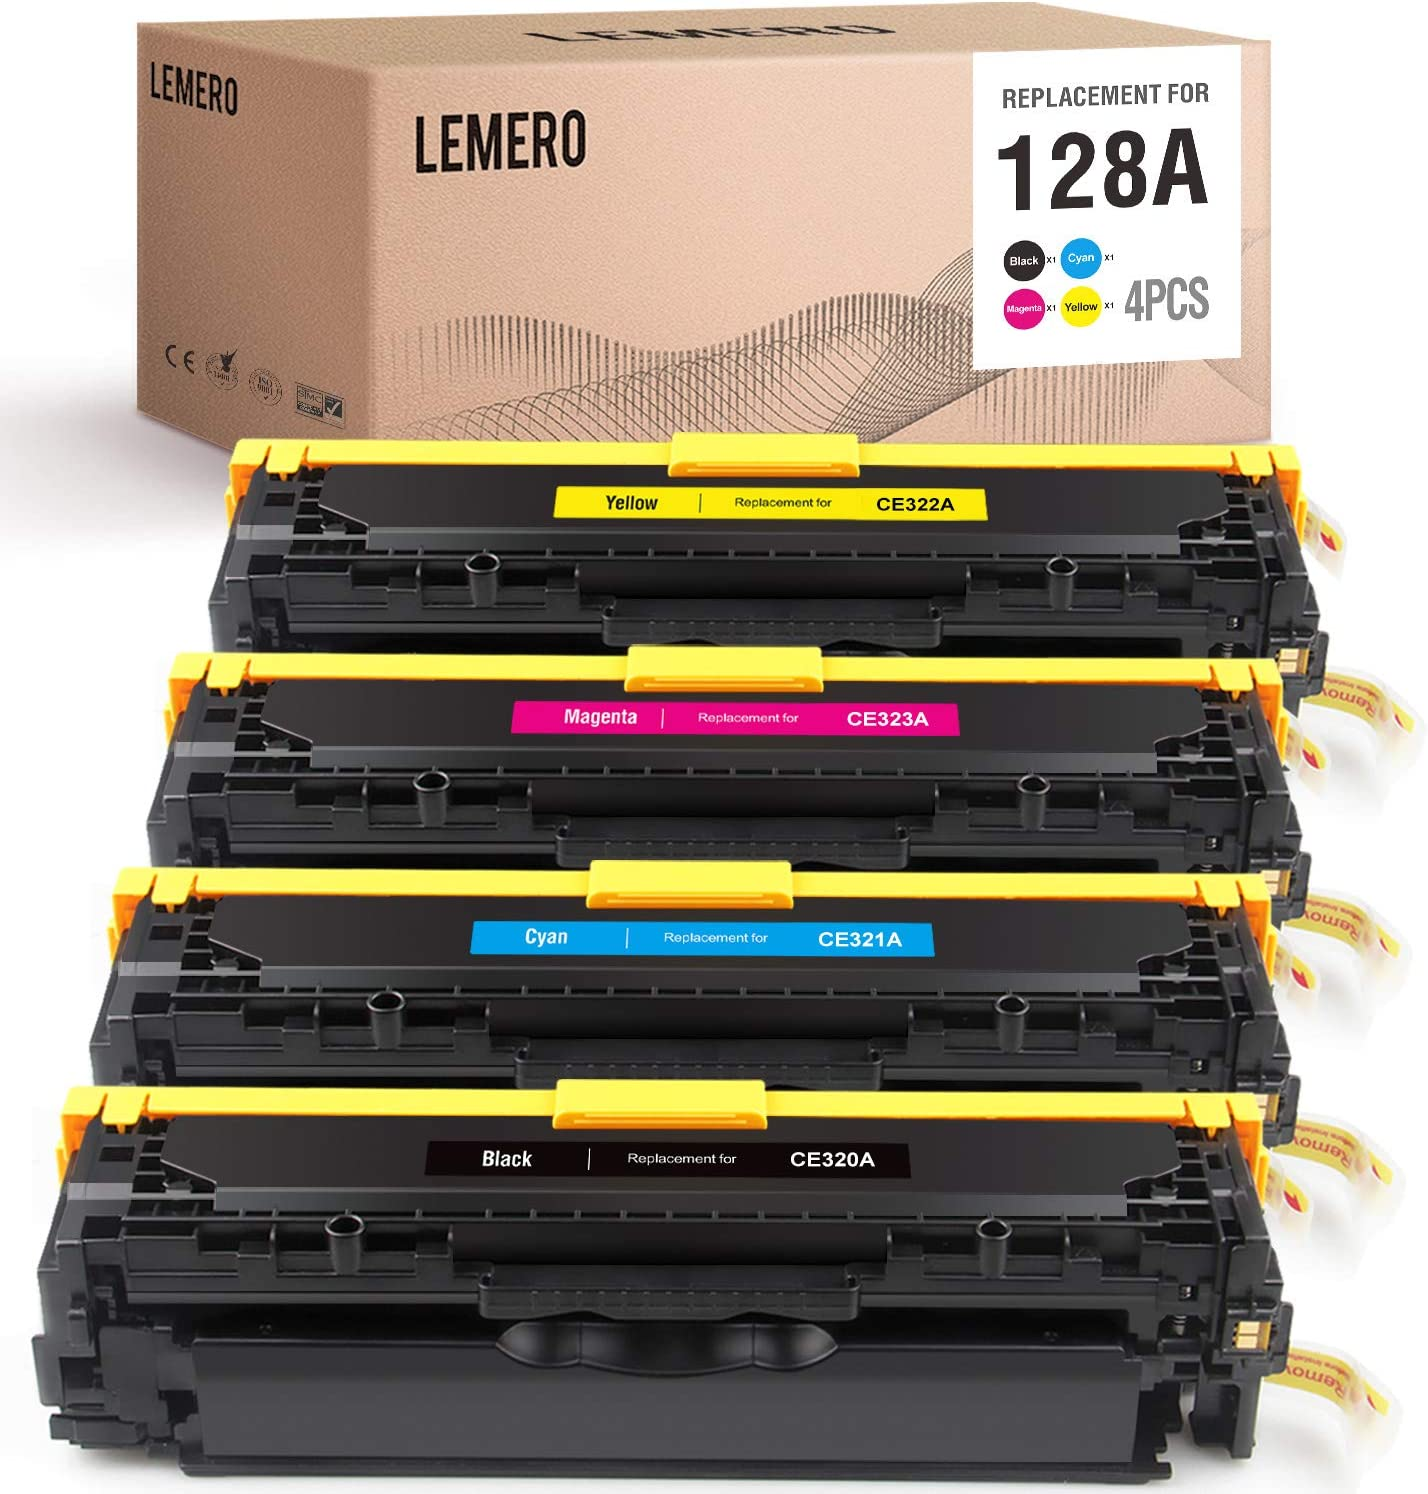 LEMERO Remanufactured Toner Cartridge Replacement for HP 128A CE320A CE321A CE322A CE323A to use with Laserjet Pro CP1525nw CM1415fn CM1415fnw MFP (Black, Cyan, Magenta, Yellow, 4-Pack)